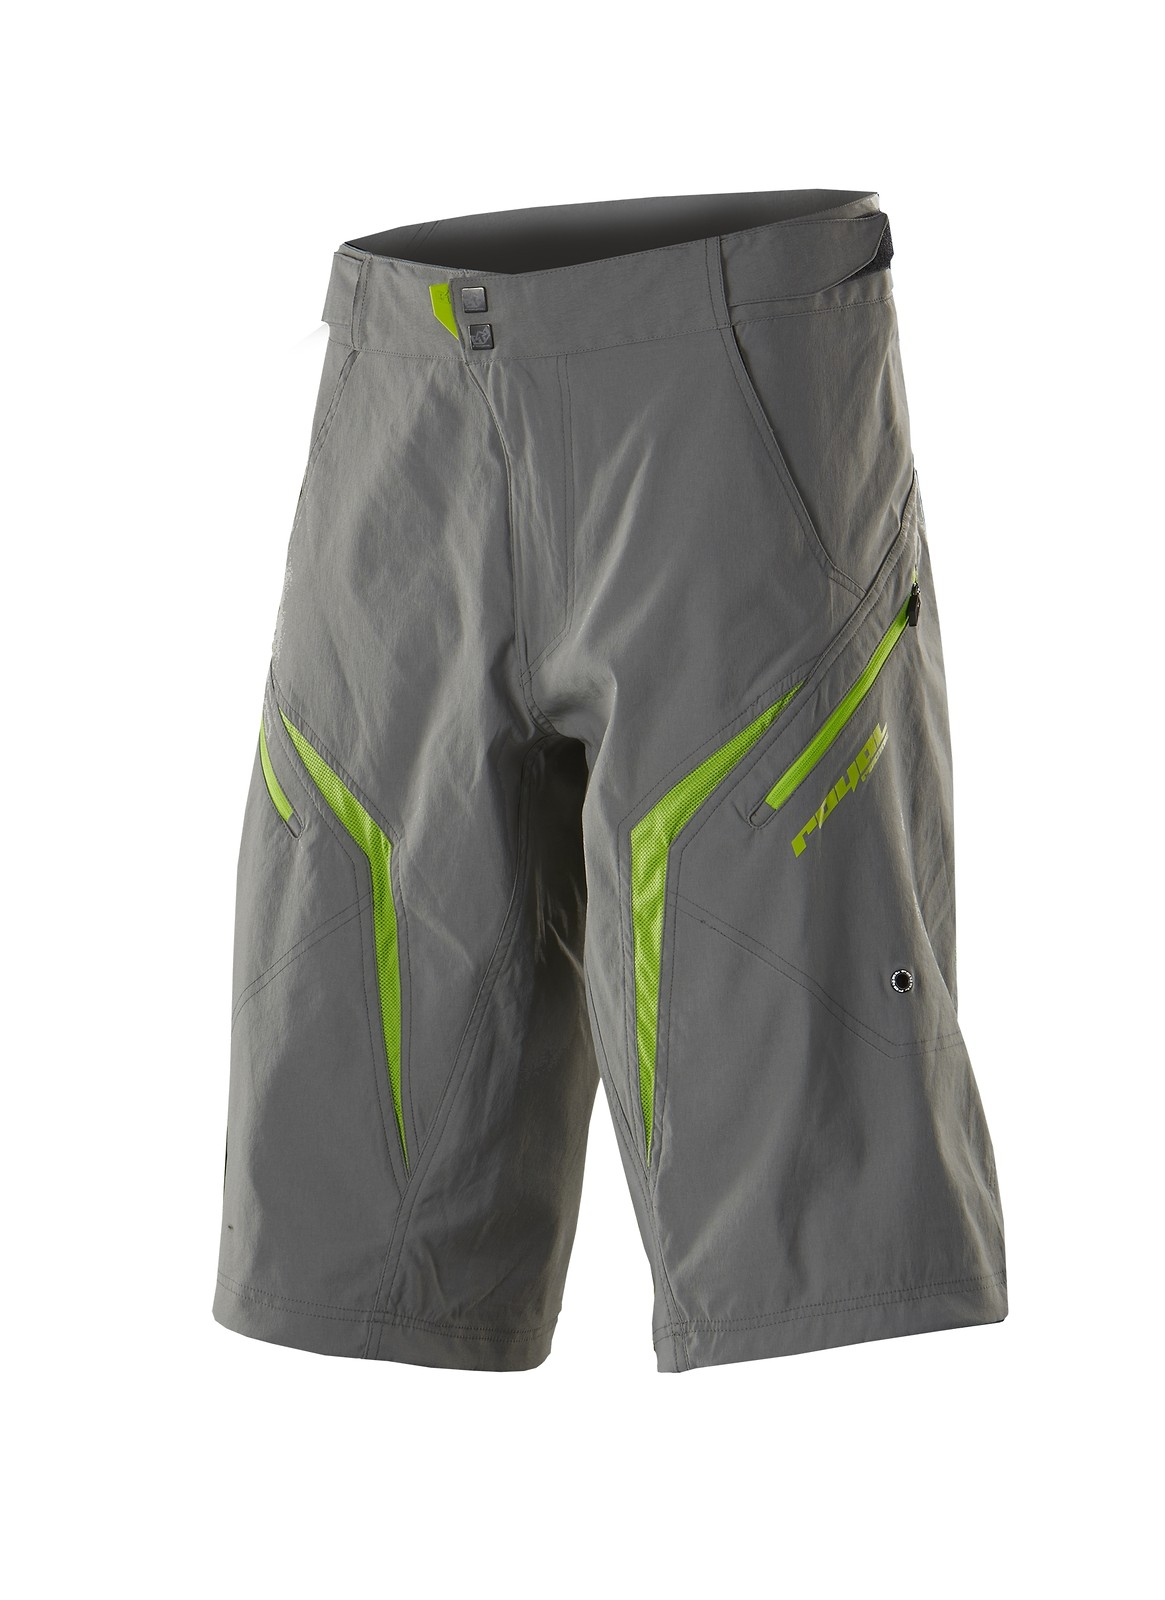 Stage-Short GRY- F